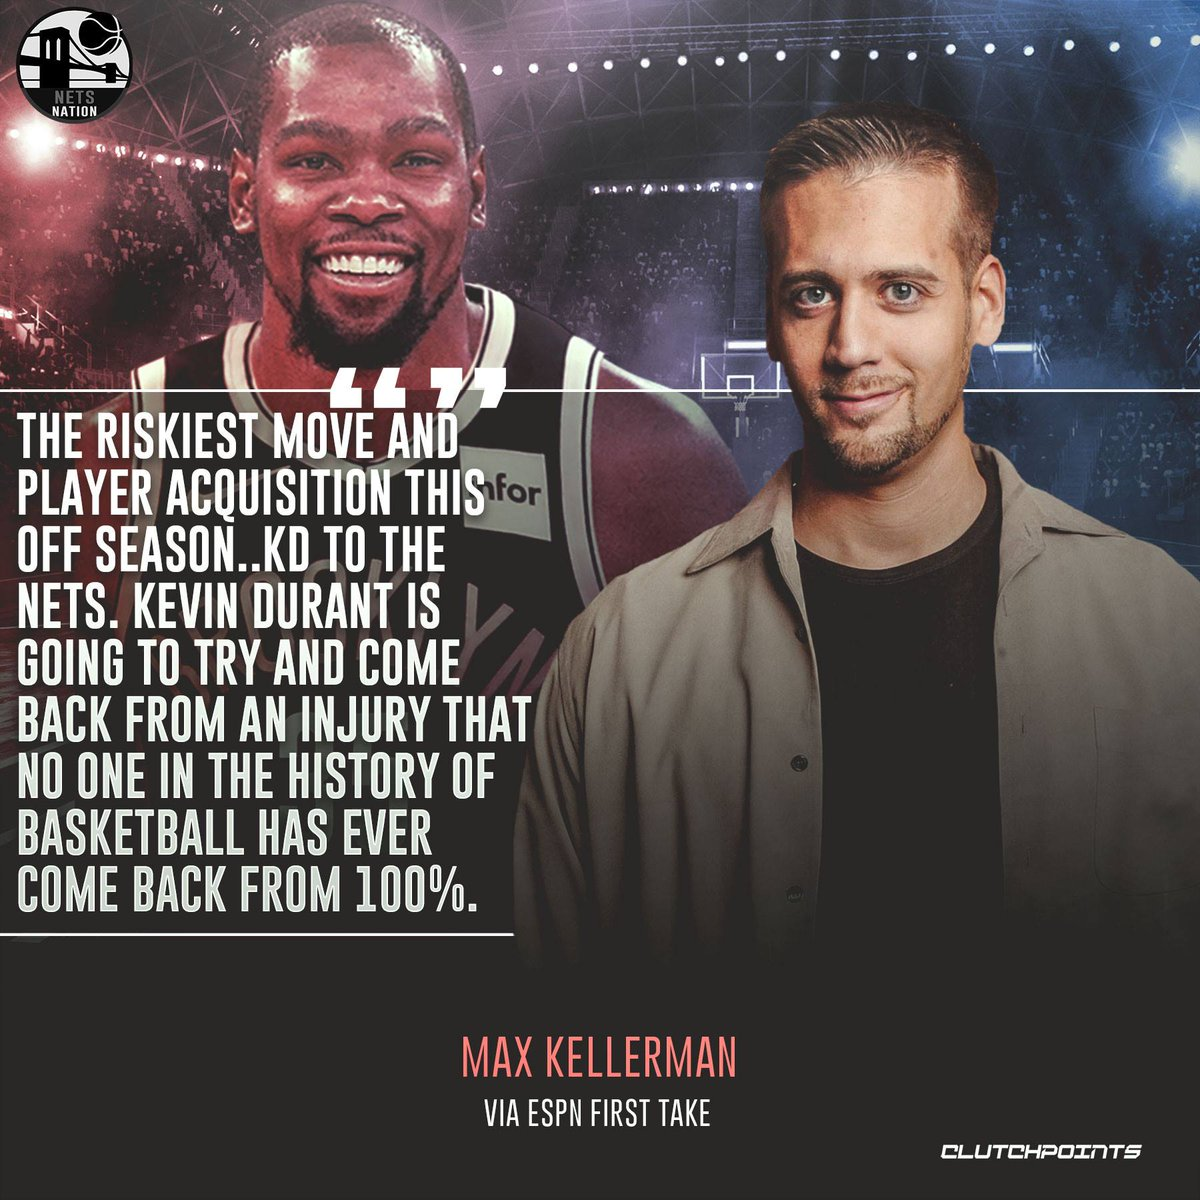 Is Max Kellerman accurate with his take on the Nets' signing of Kevin Durant? 🤔👀  #WeGoHard #Nets